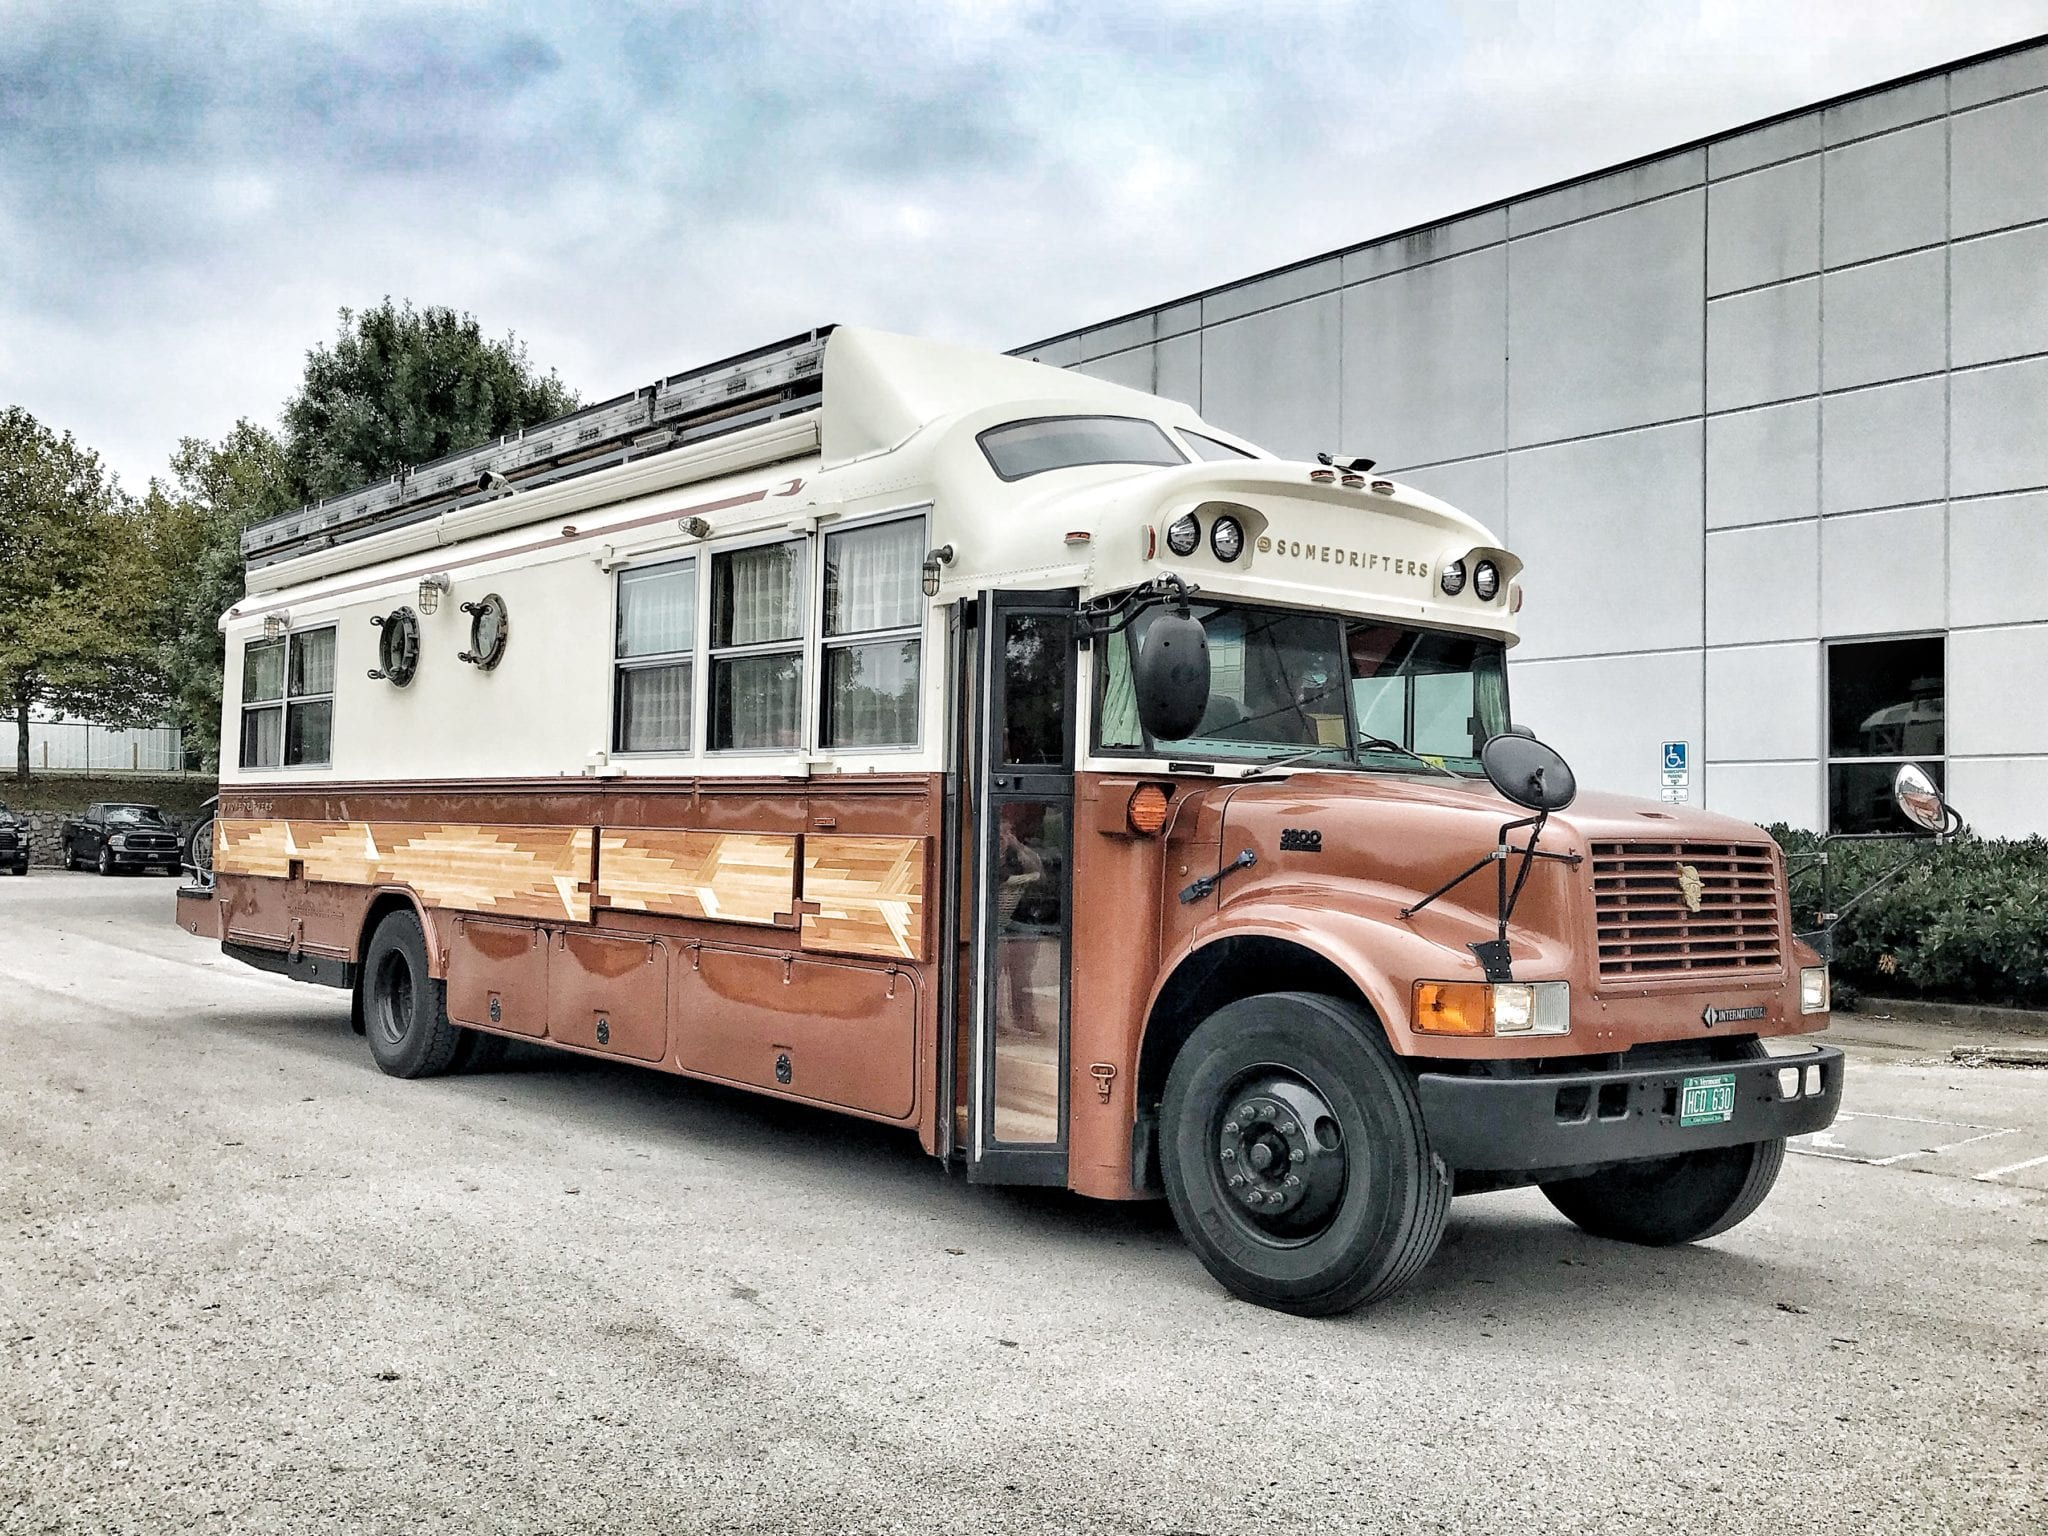 THE Coolest School Bus Was in Our Shop: International Truck